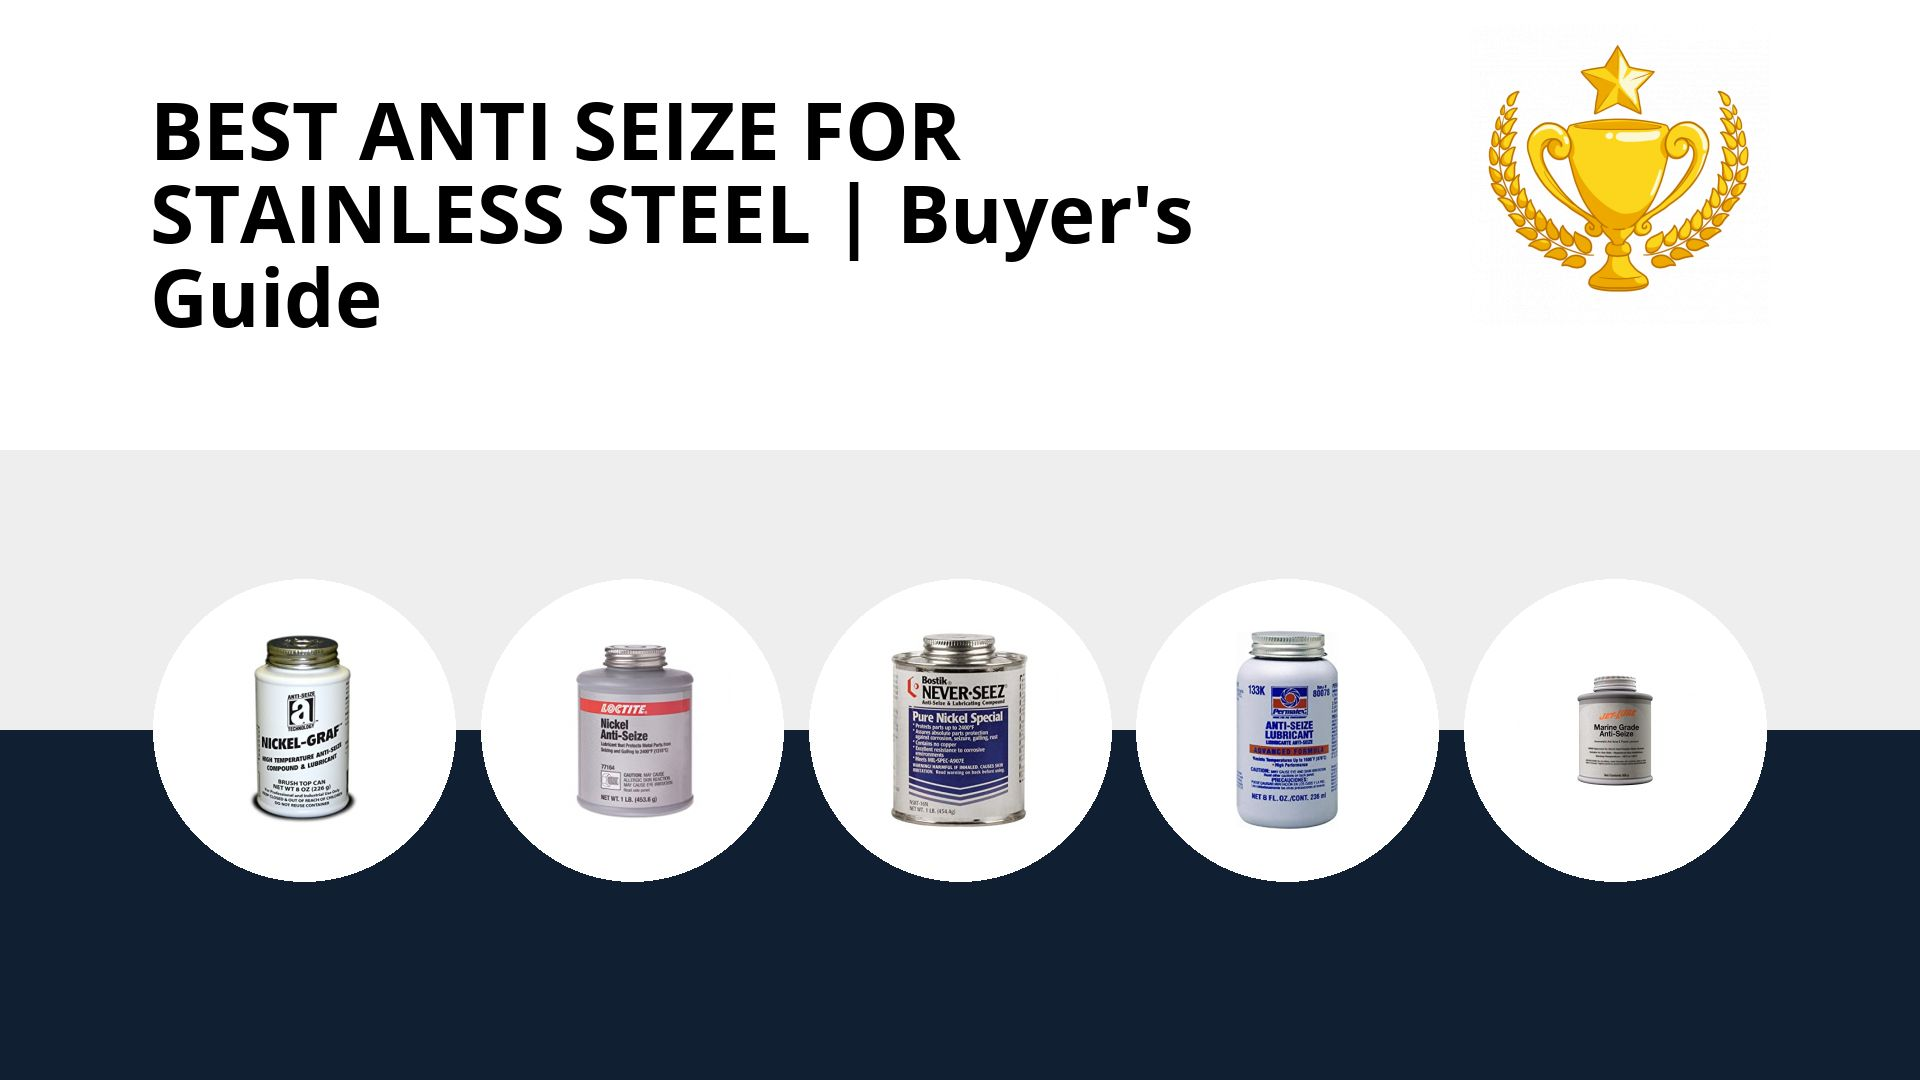 Best Anti Seize For Stainless Steel: image